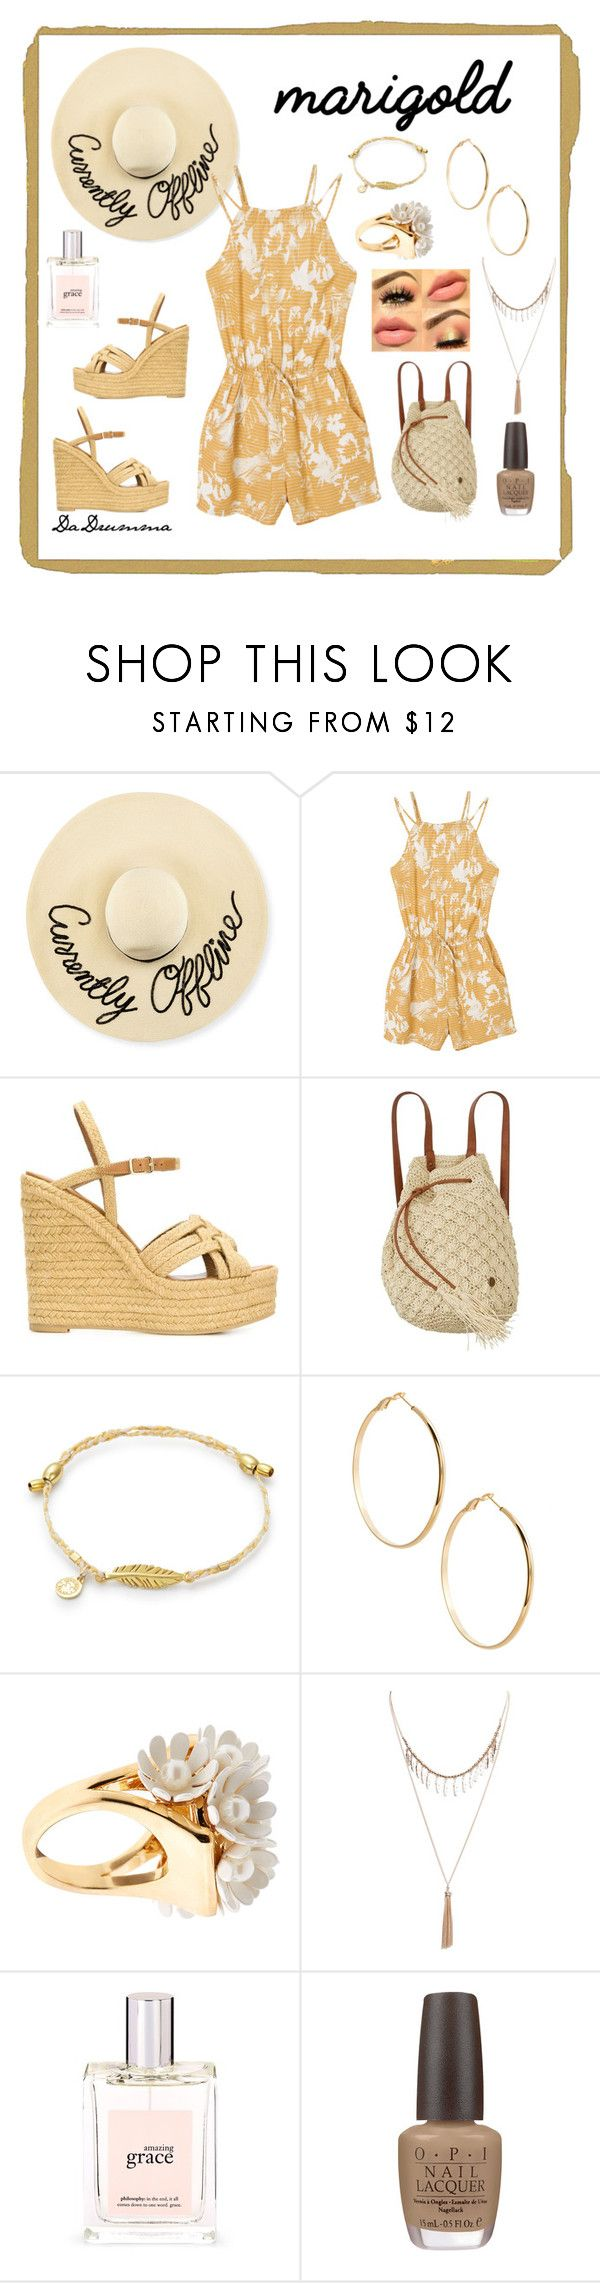 """Marigold"" by dadrumma on Polyvore featuring Eugenia Kim, RVCA, Yves Saint Laurent, Billabong, GUESS by Marciano, Lele Sadoughi, Wet Seal, philosophy, OPI and Summer"